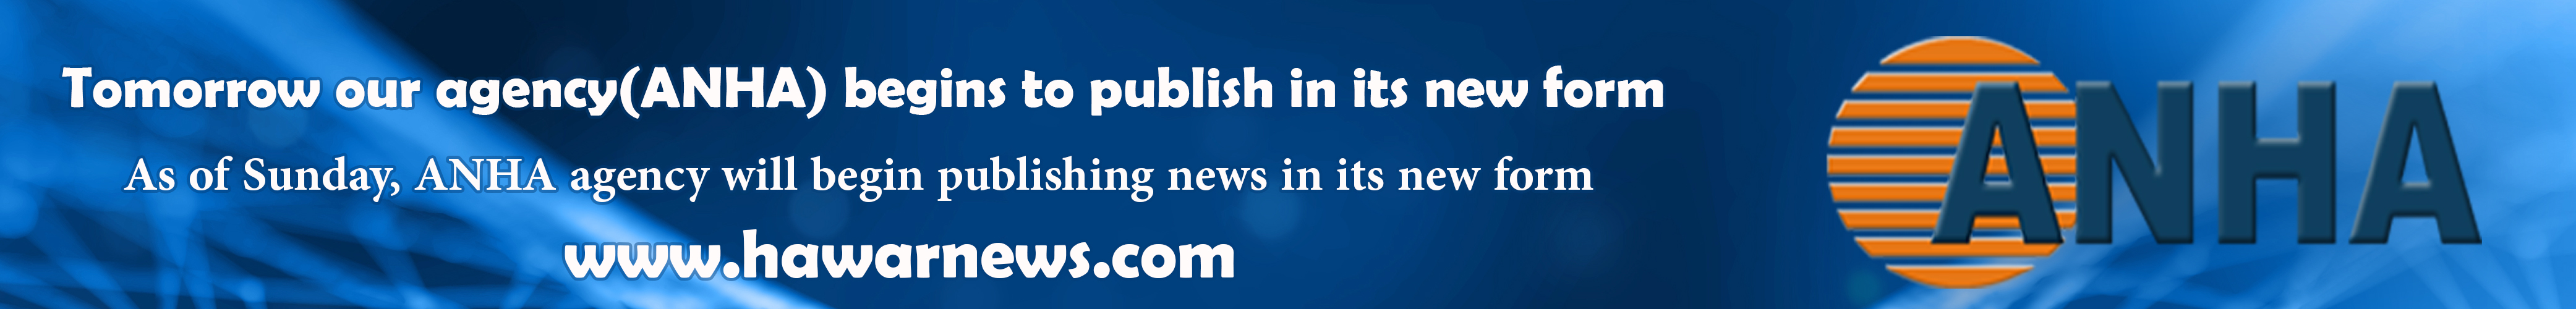 Tomorrow our agency(ANHA) begins to publish in its new form